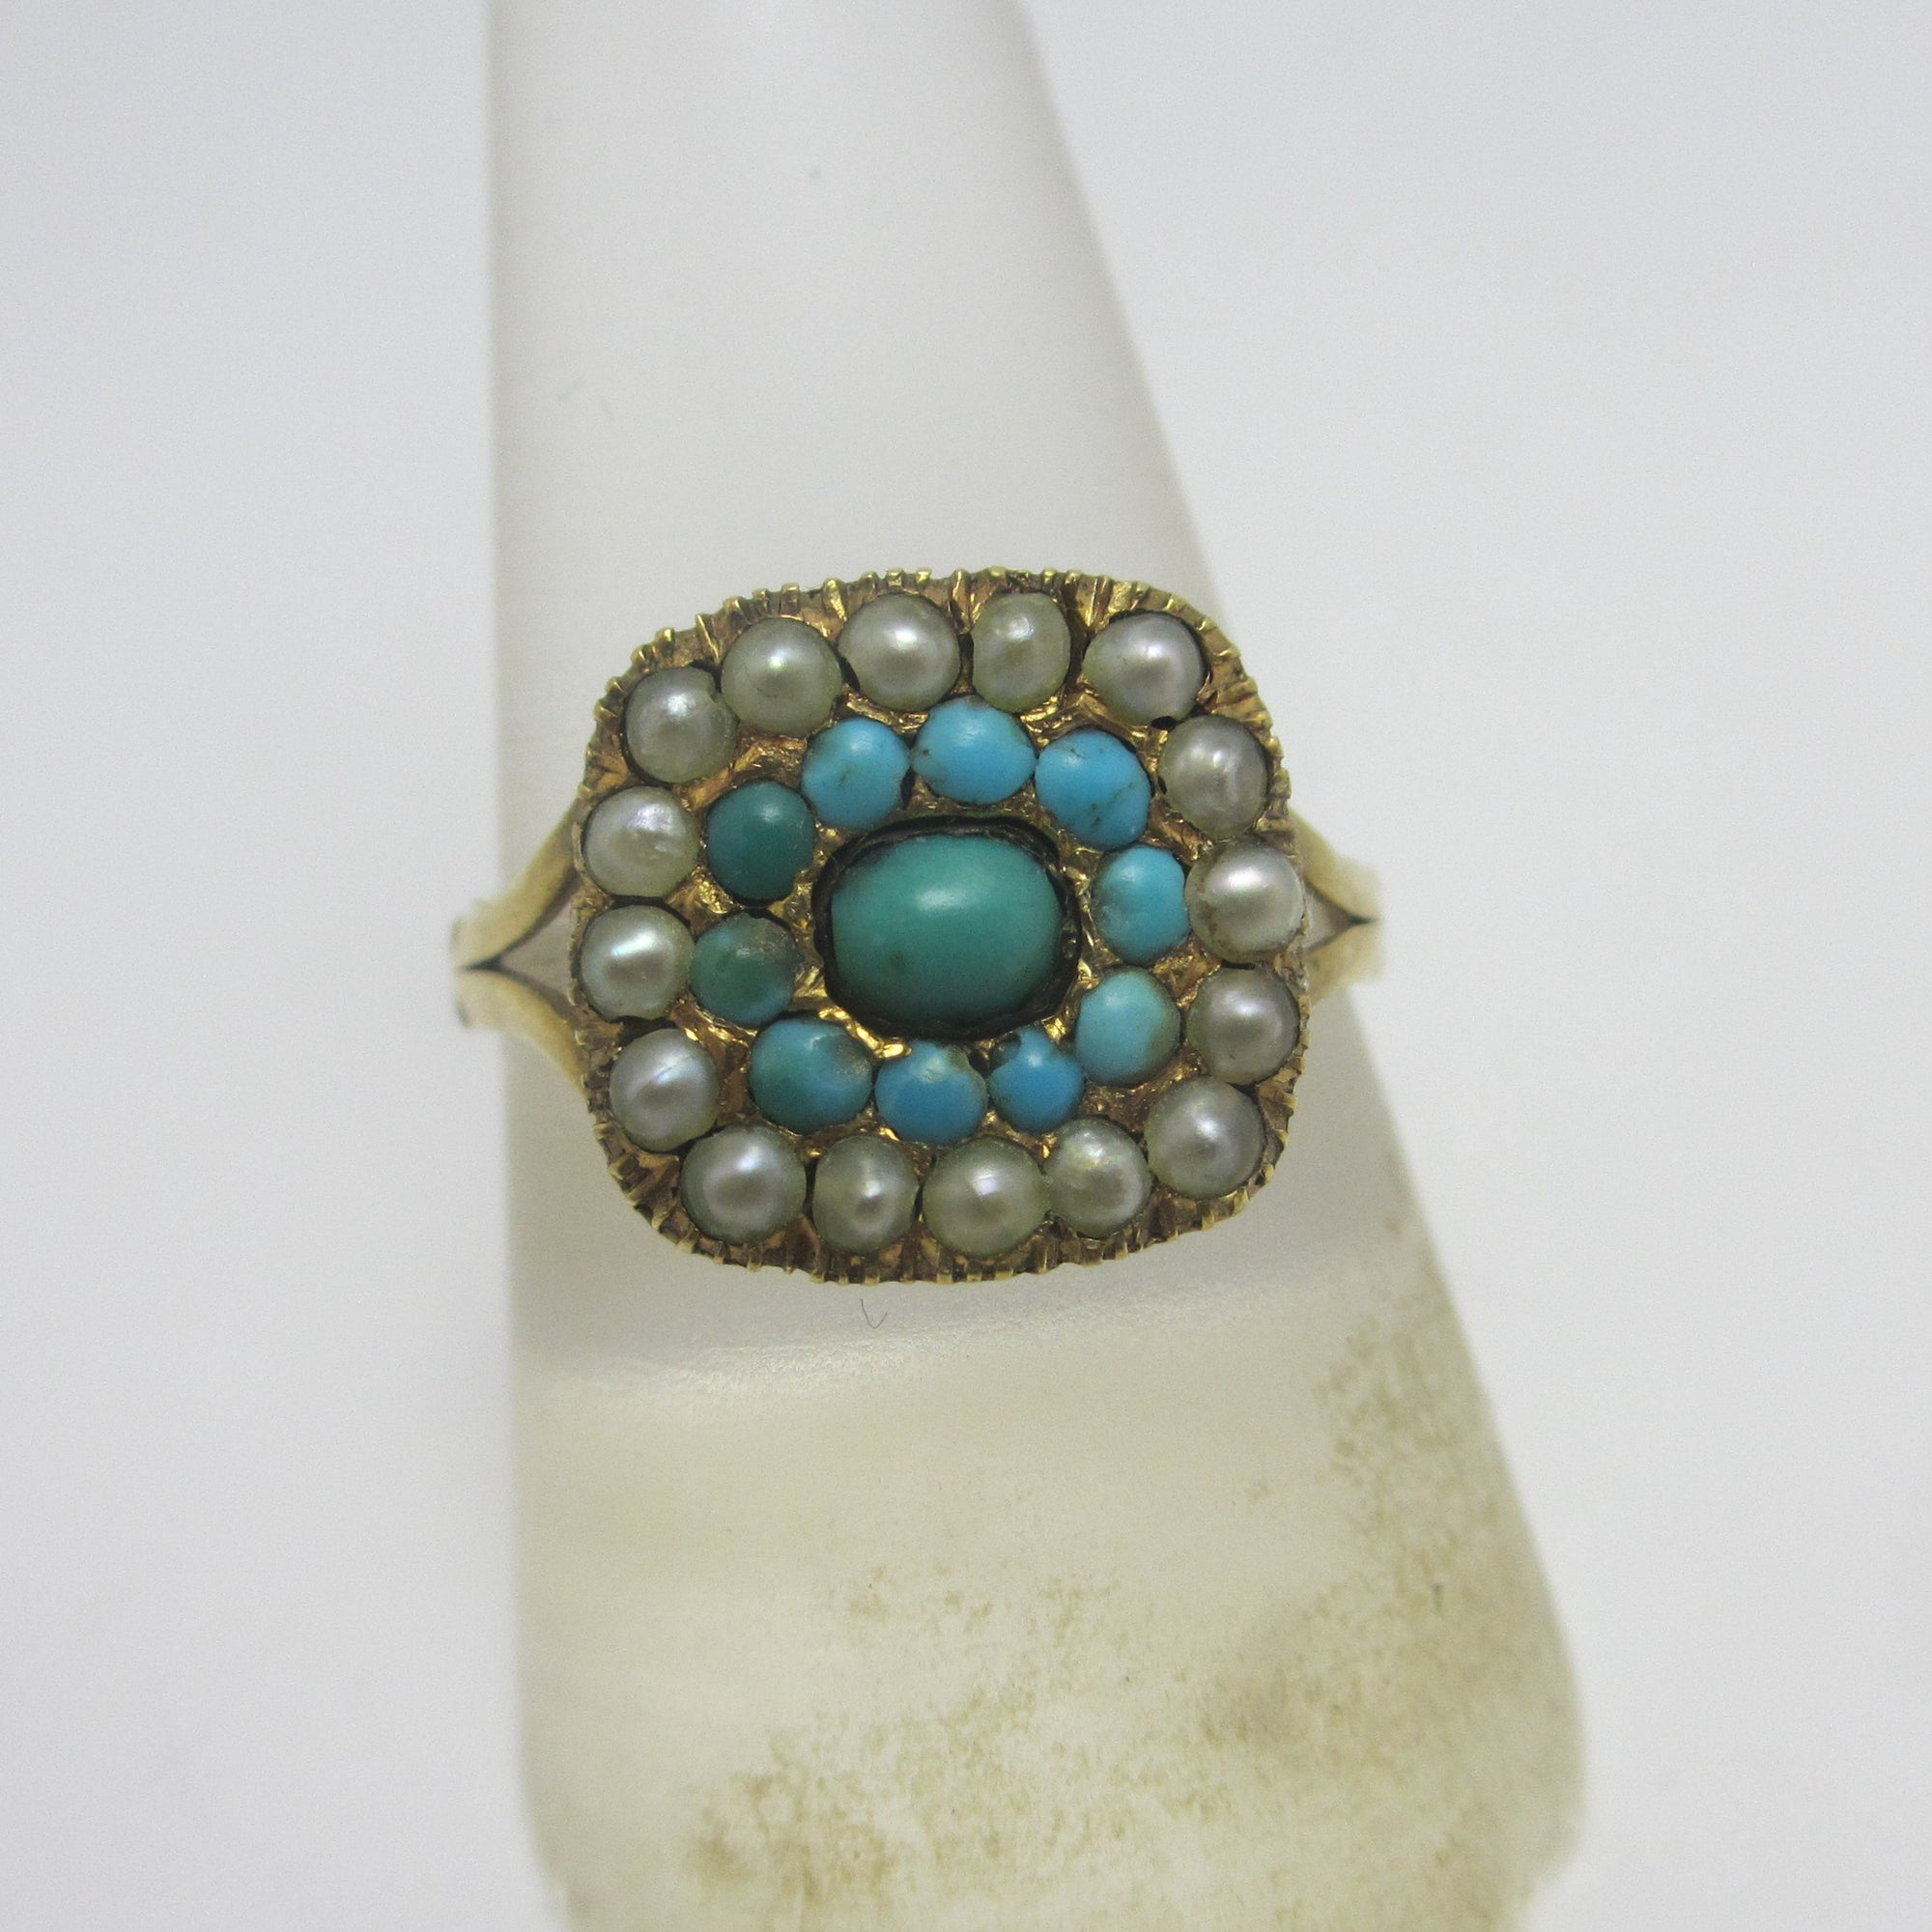 Turquoise & Seed Pearl 9k Gold Ring Antique Georgian c1820